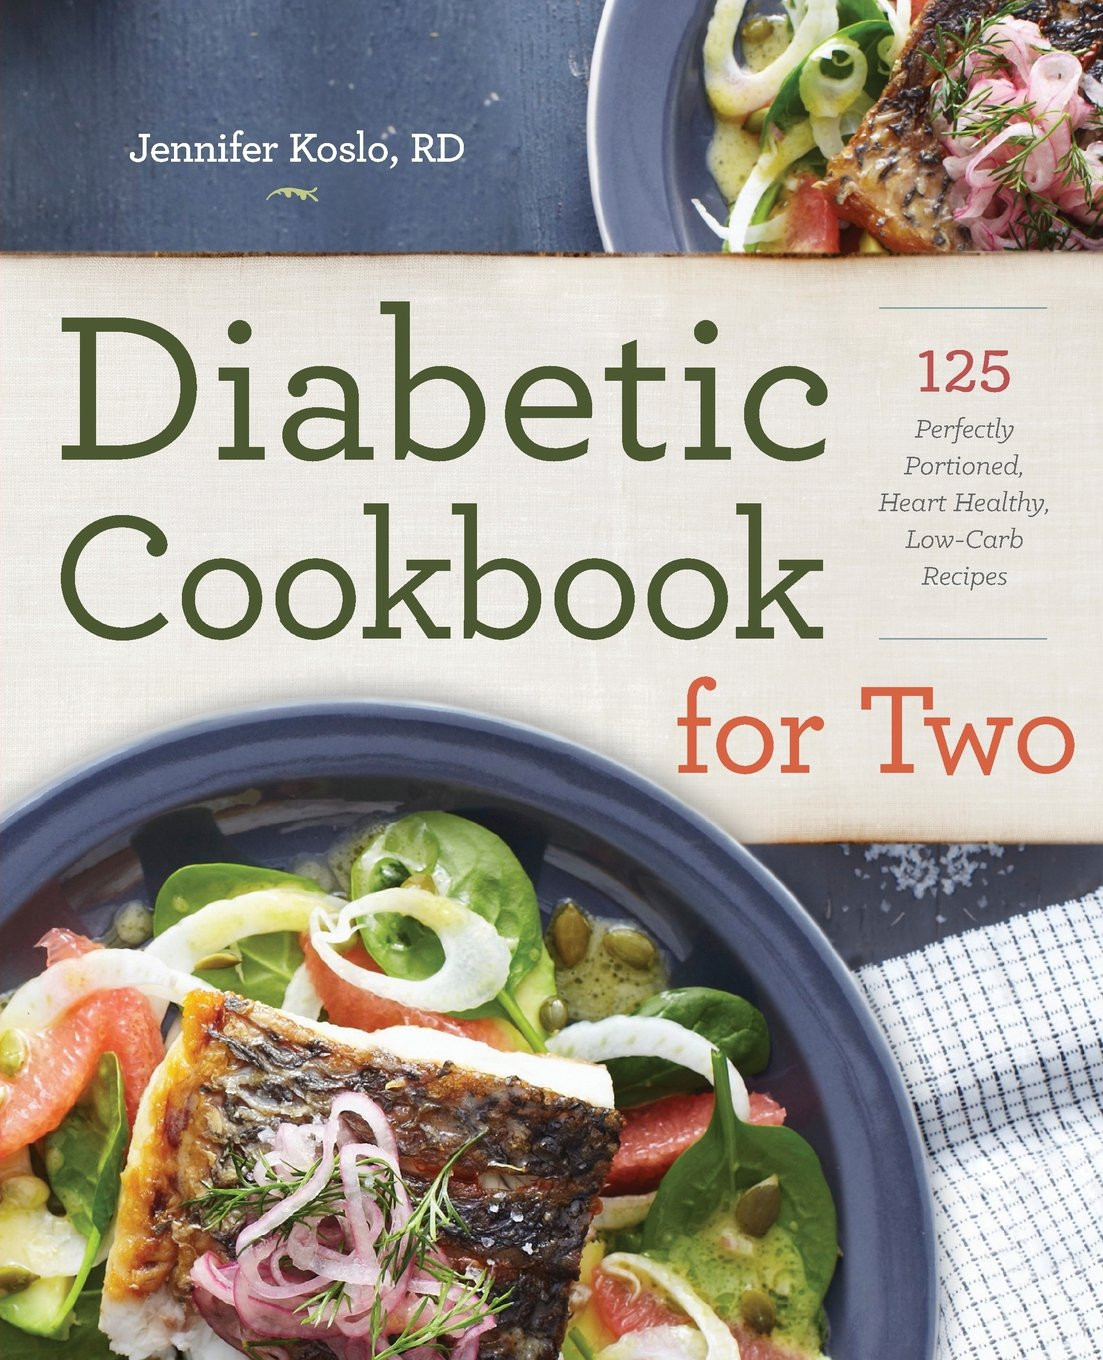 Heart Healthy Recipes For Diabetics  Diabetic Cookbook for Two 125 Perfectly Portioned Heart